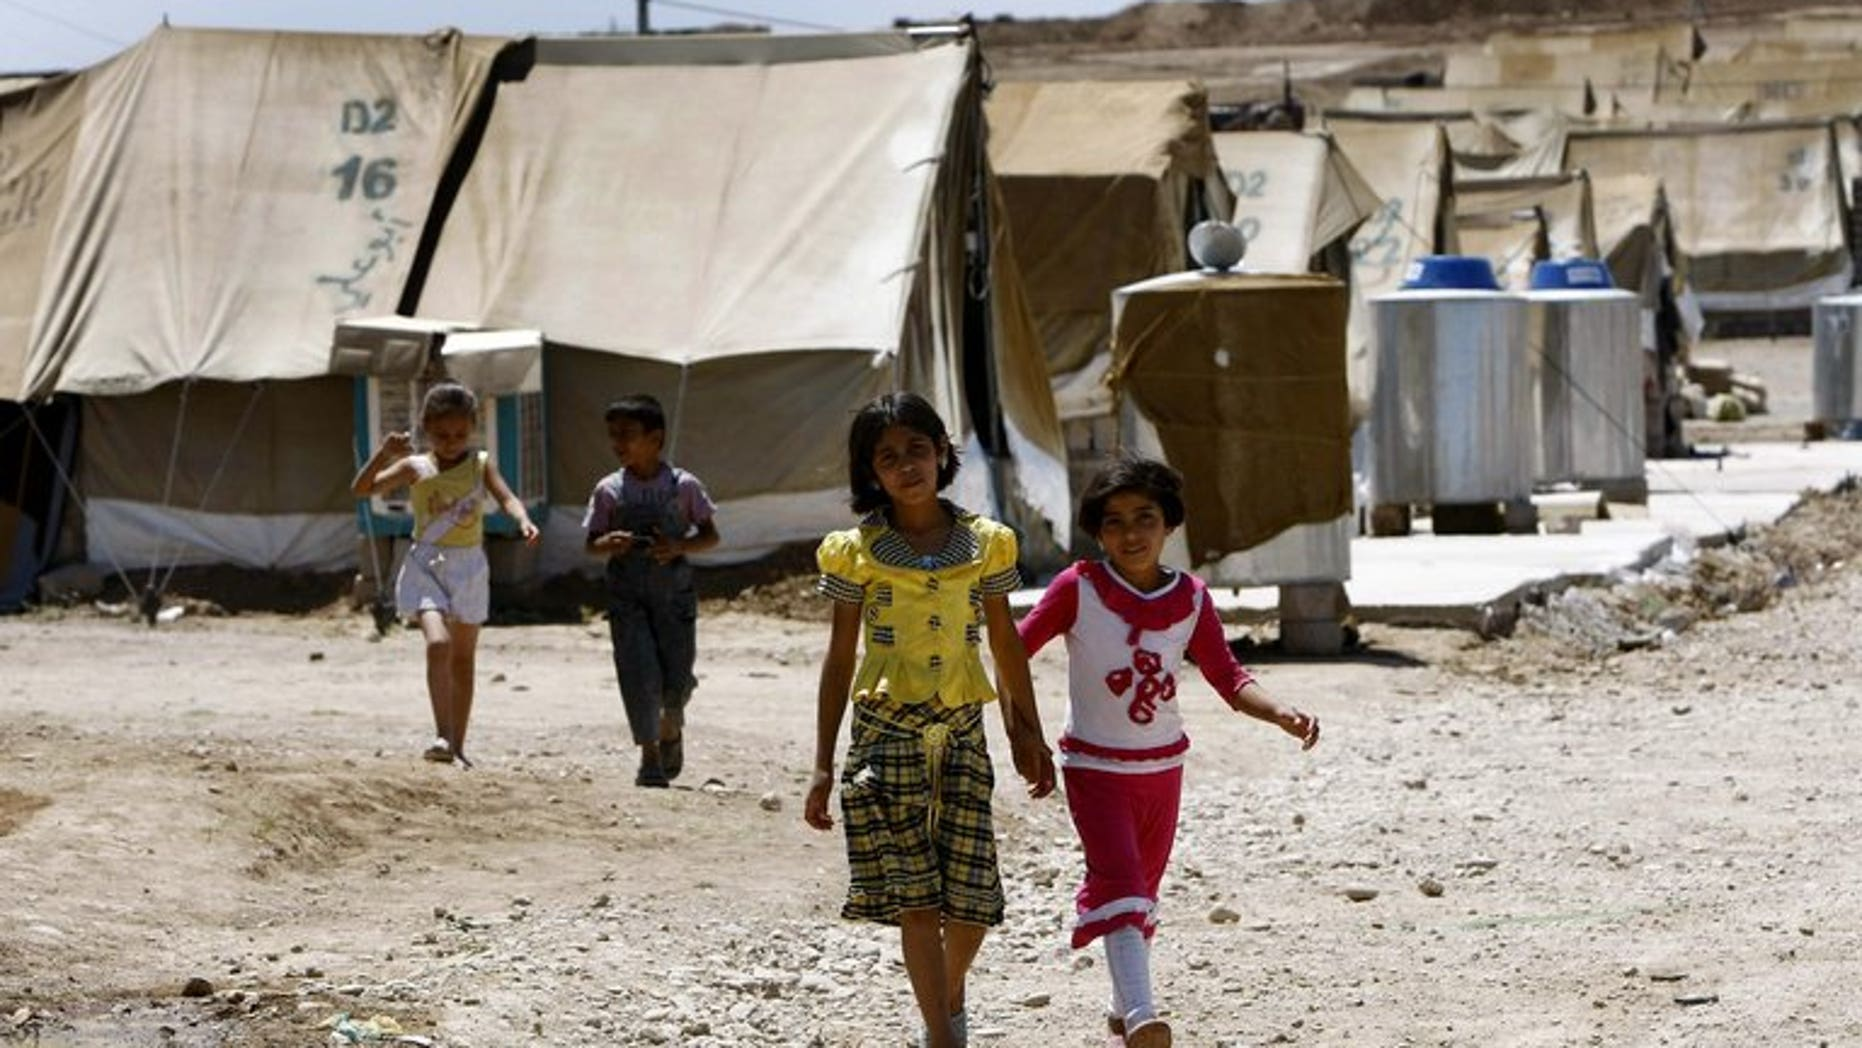 Syrian-Kurdish children walk on June 8, 2012 in the Domiz refugee camp, 20 km south-east of Dohuk city. The UN refugee agency said Friday it was scrambling aid in northern Iraq after thousands of Syrians crossed the tightly-controlled border in a sudden and unexplained influx.